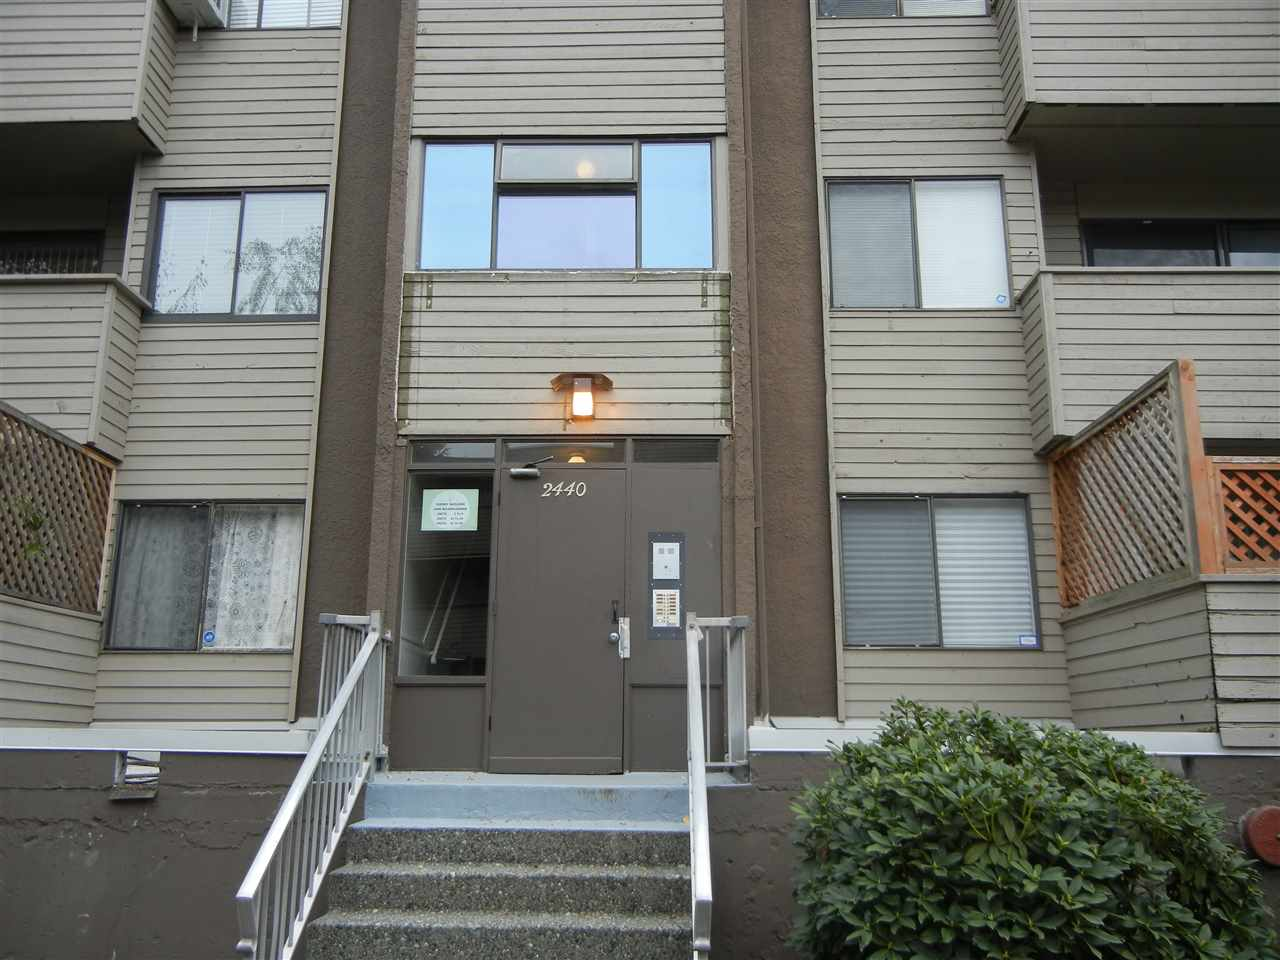 This is a 3 big size bedrooms unit, has been completely updated in 2013. New tile floor in kitchen & bathroom. New kitchen cabinets & countertops & appliances, new laminate floors throughout. Air conditioning. Excellent location. A short walk to downtown of Port Coquitlam. Coquitlam River & Gates Park. 5 minutes drive away from Skytrain Station and the West Coast Express. Easy access to HIGHWAY 1 & Lougheed Highway. The maintenance fee includes indoor swimming pool, hot tub, sauna, recreation room, clubhouse and hot water. A must see! Accepted Offer, S/R date NOV 24.